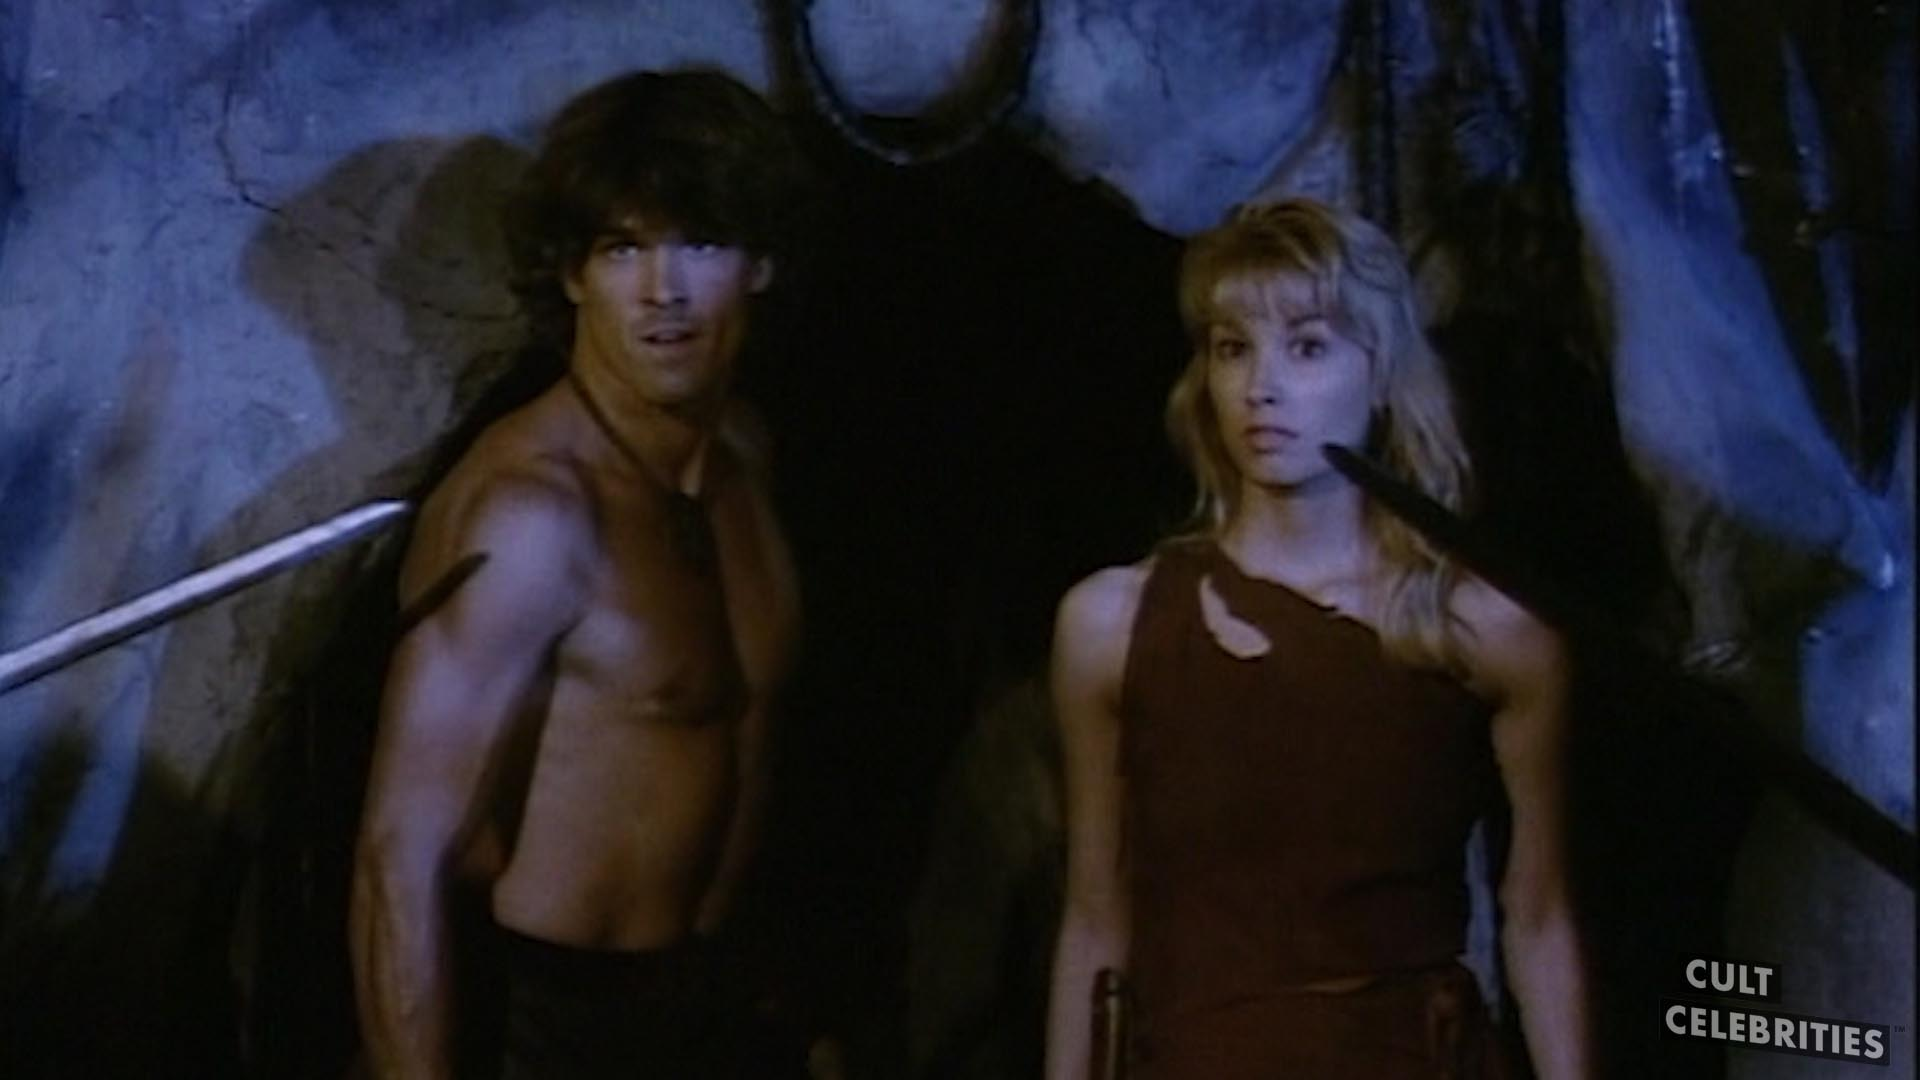 Monique Gabrielle and John Terlesky in Deathstalker II: Duel of the Titans (1987)